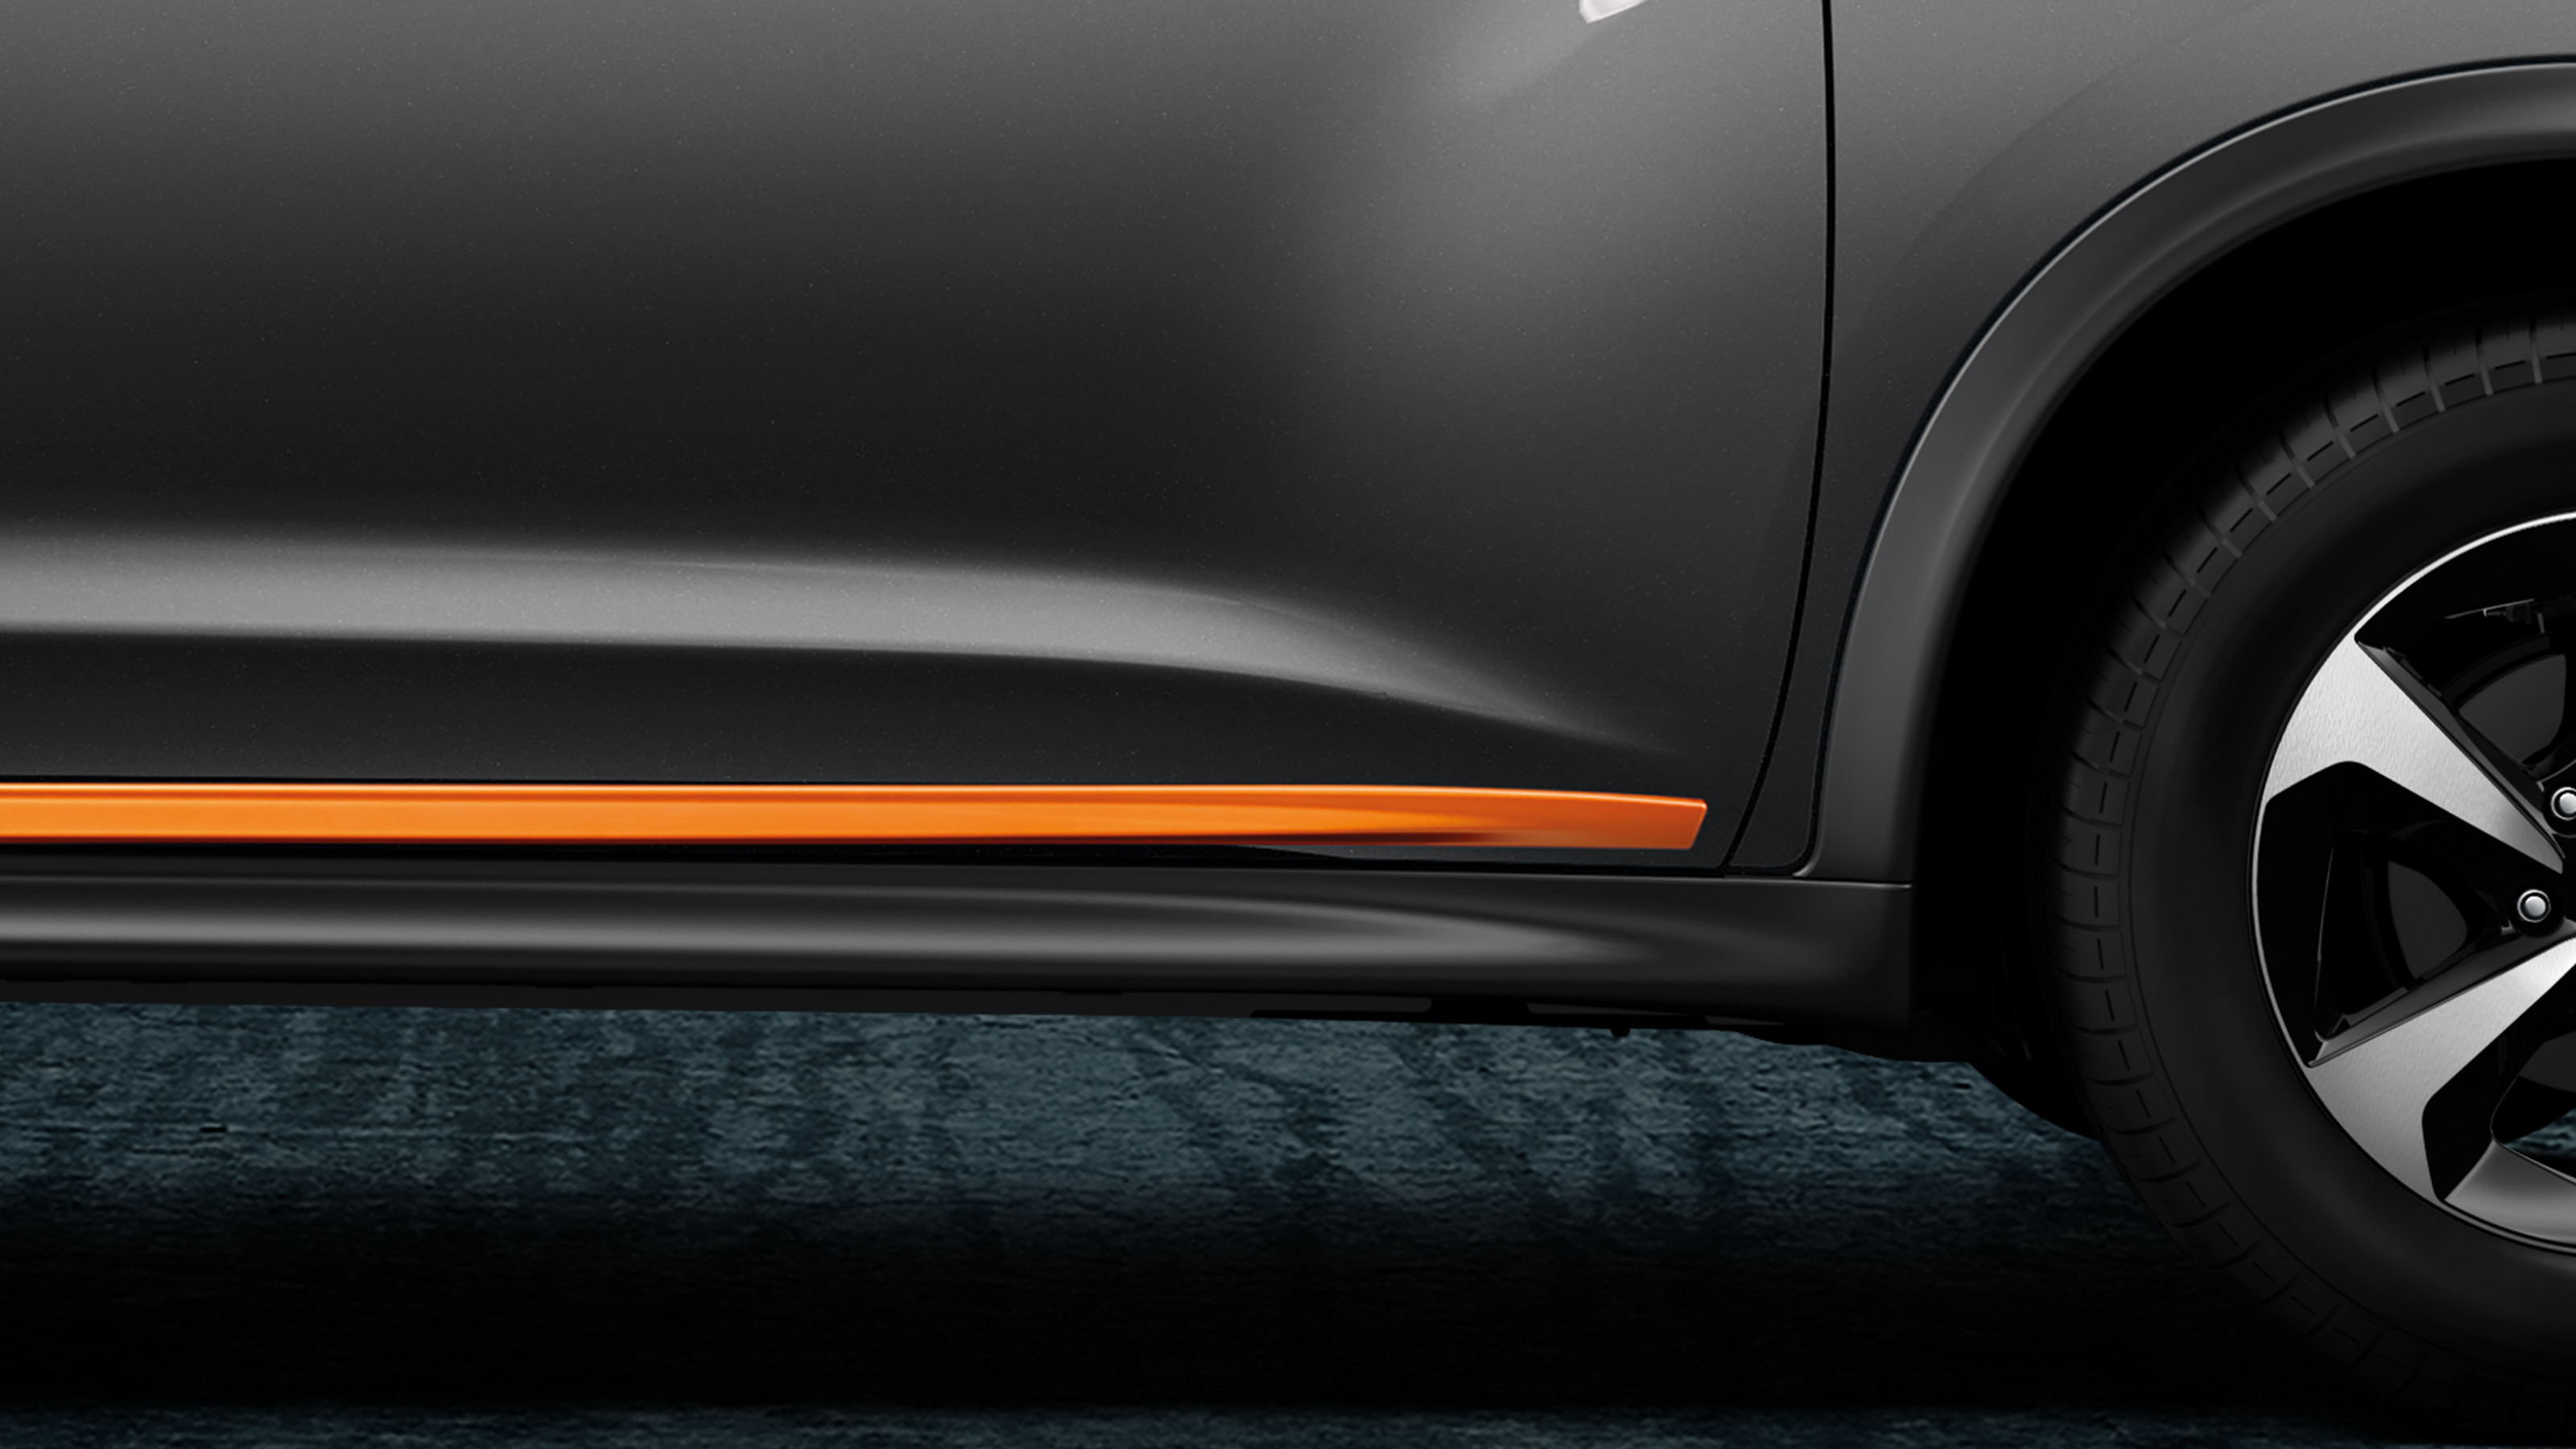 Orange accent on the bottom of the rear passenger door.